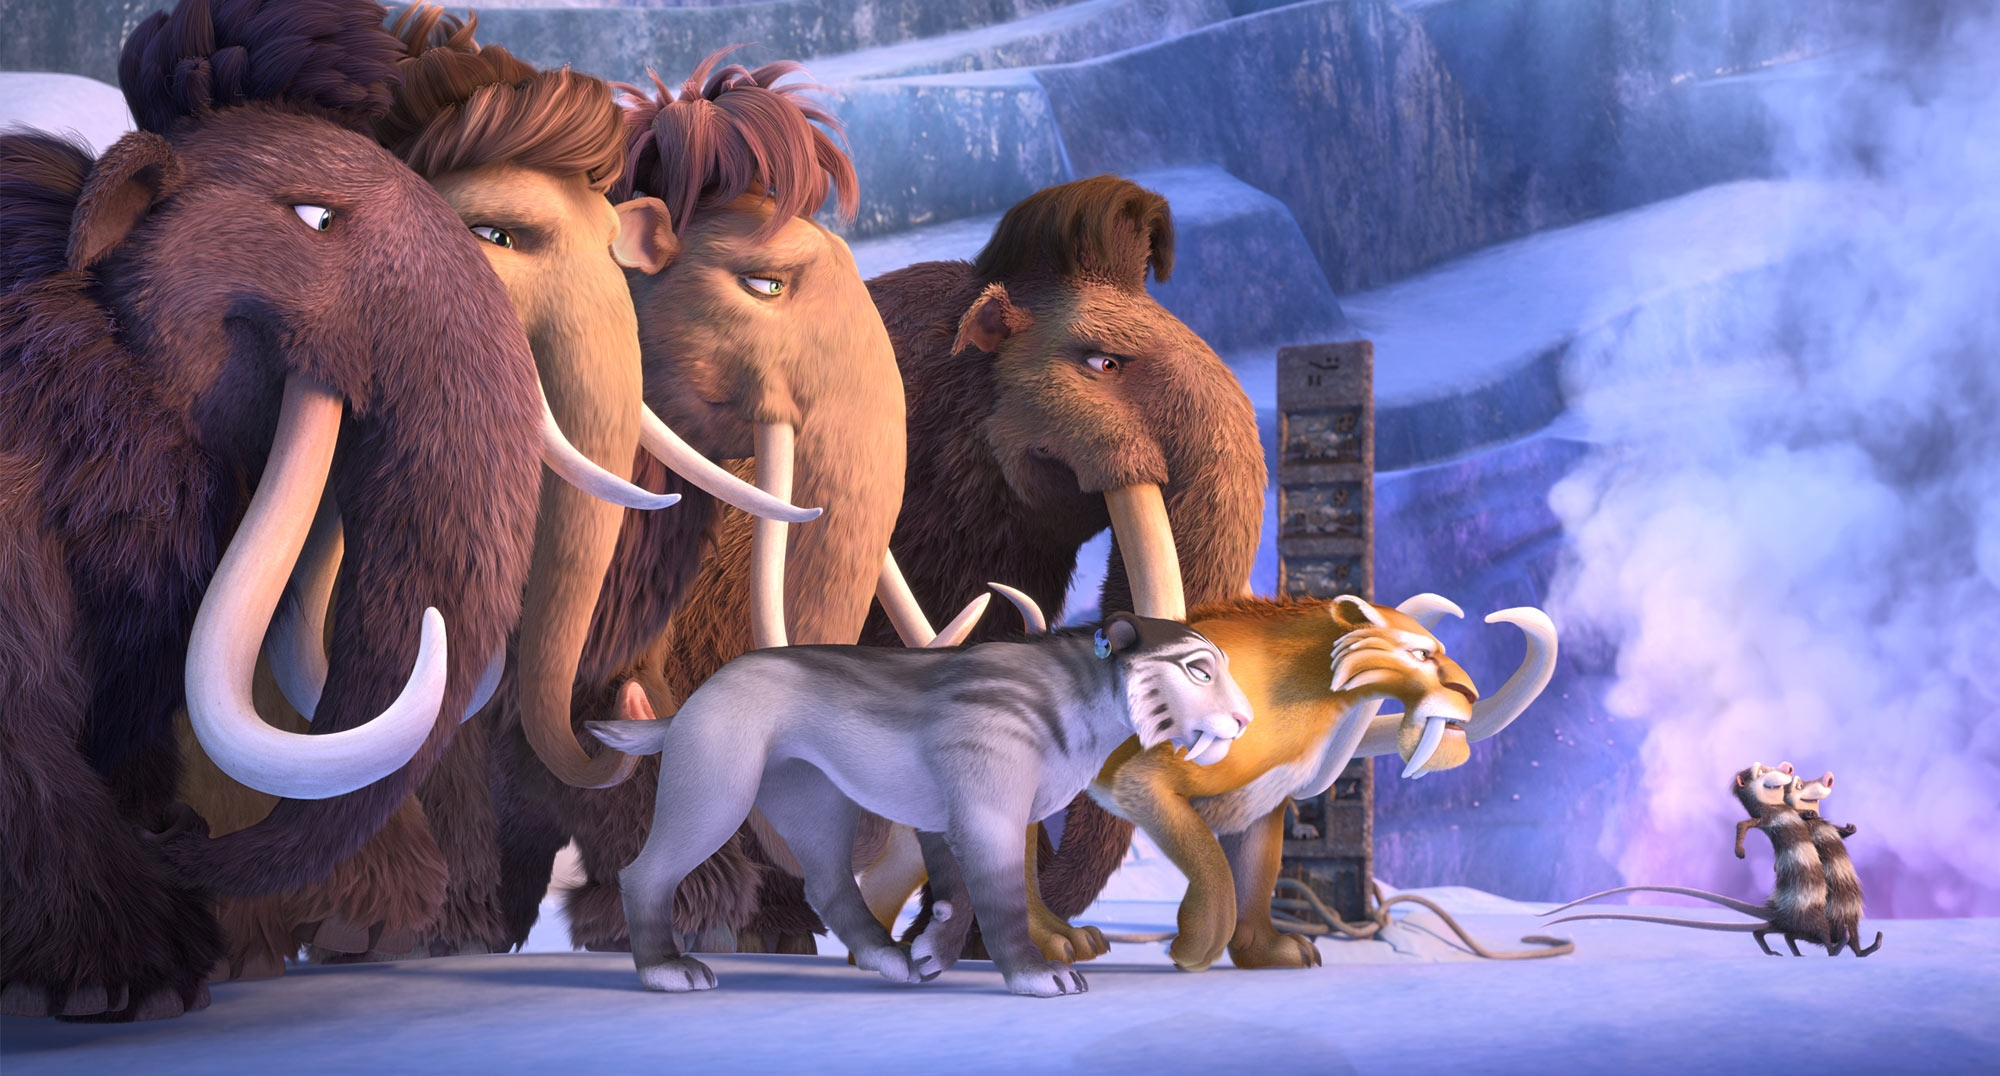 High Resolution Wallpaper | Ice Age: Collision Course 2000x1076 px